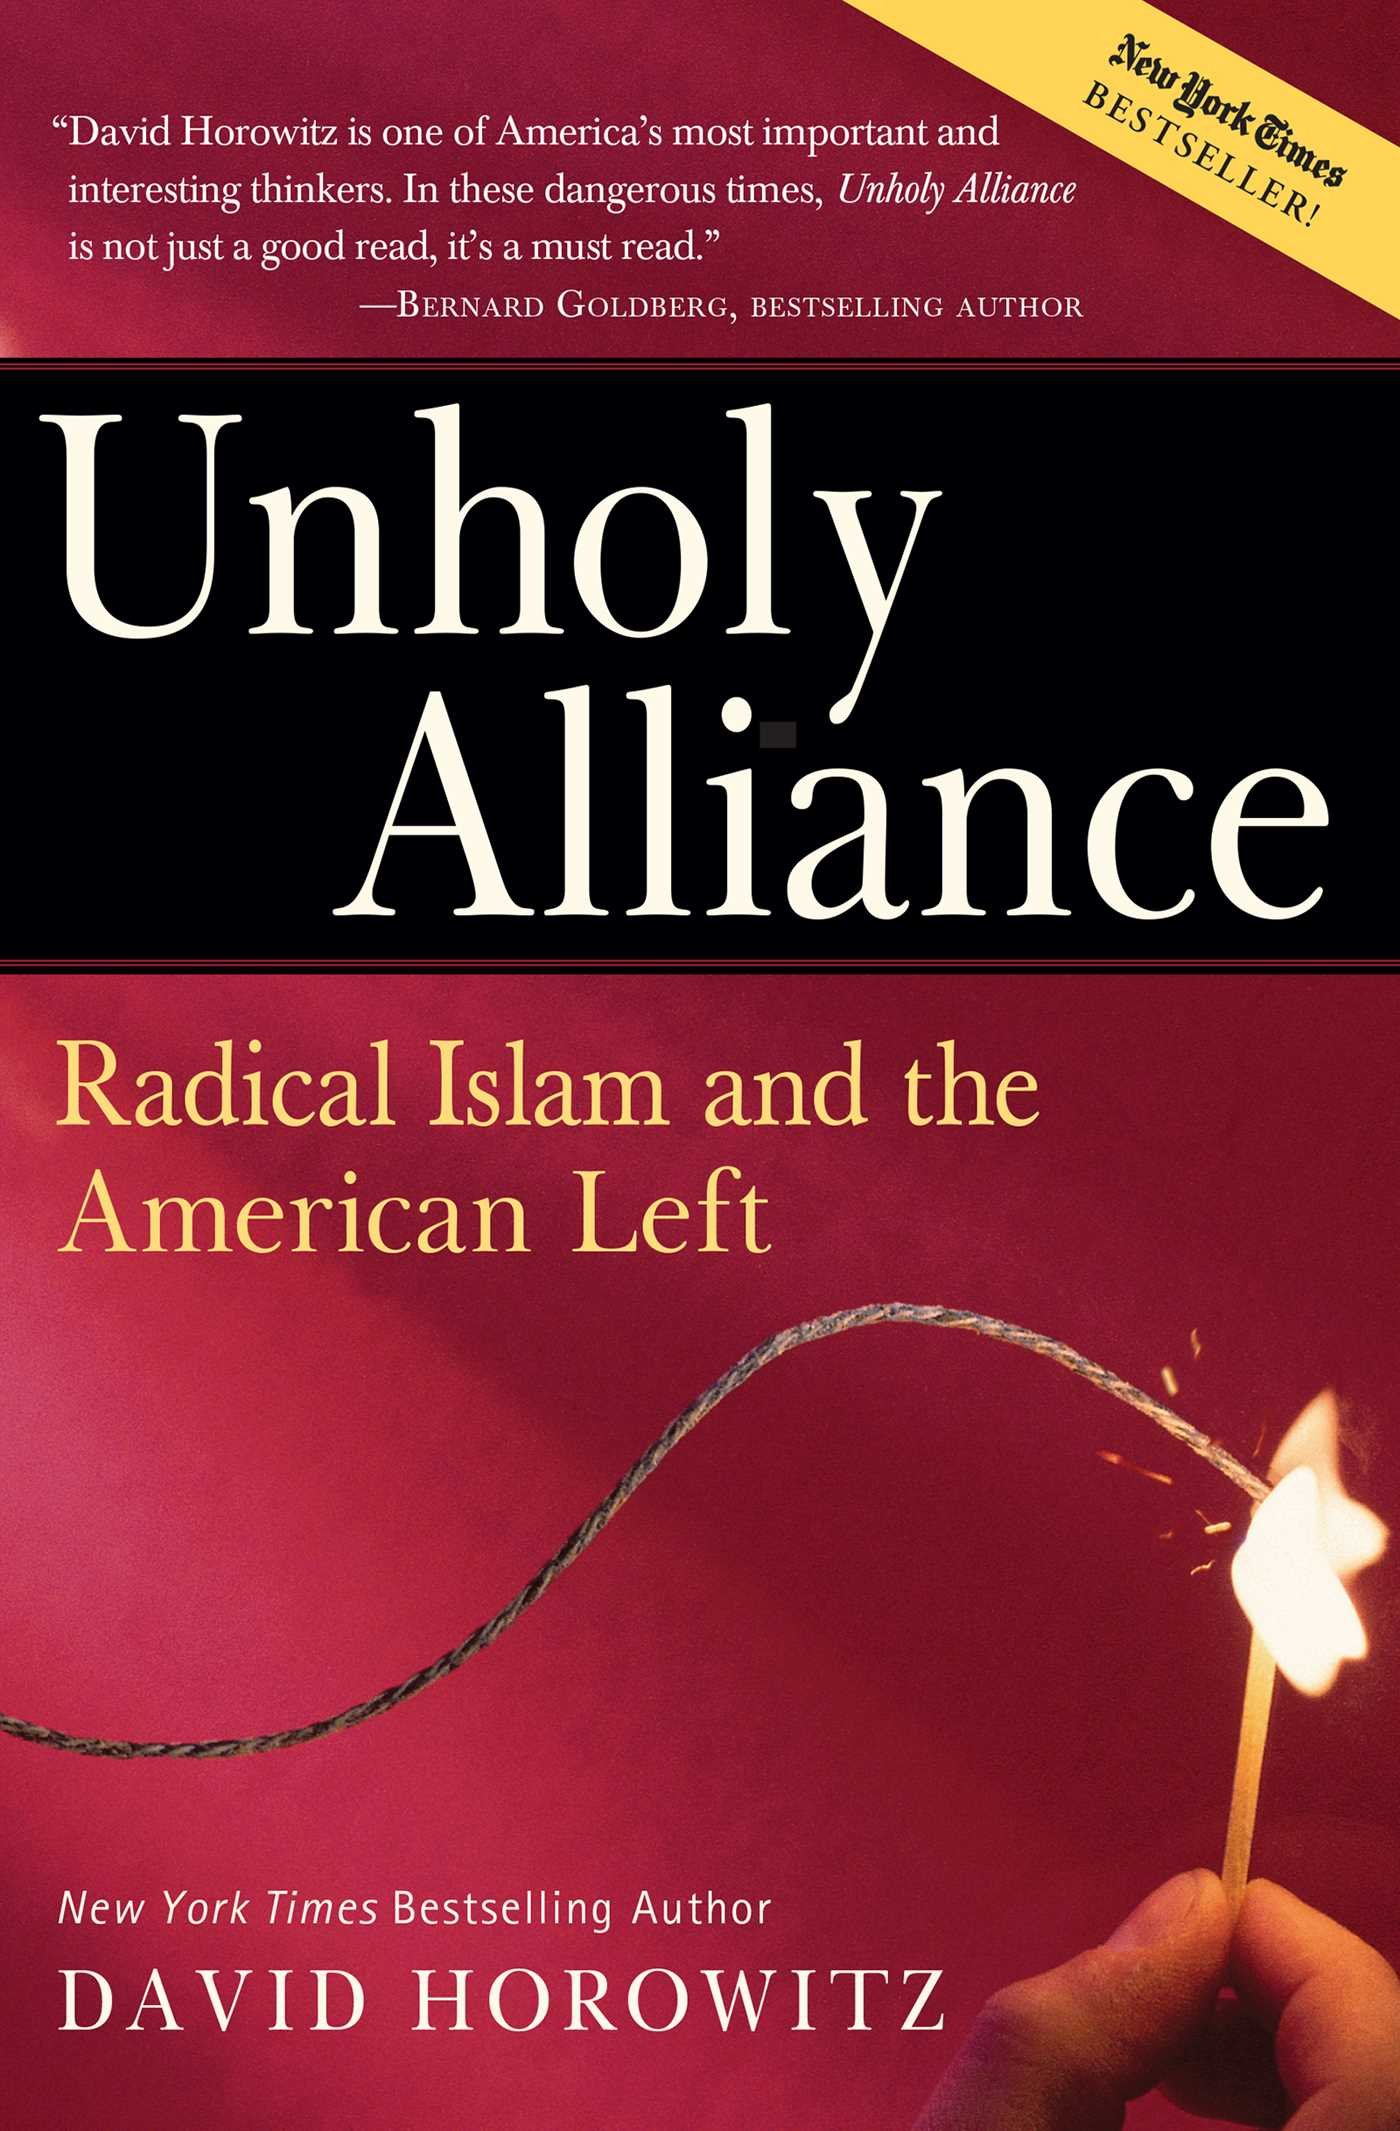 Unholy Alliance: Radical Islam And the American Left: David Horowitz:  9780895260260: Books - Amazon.ca